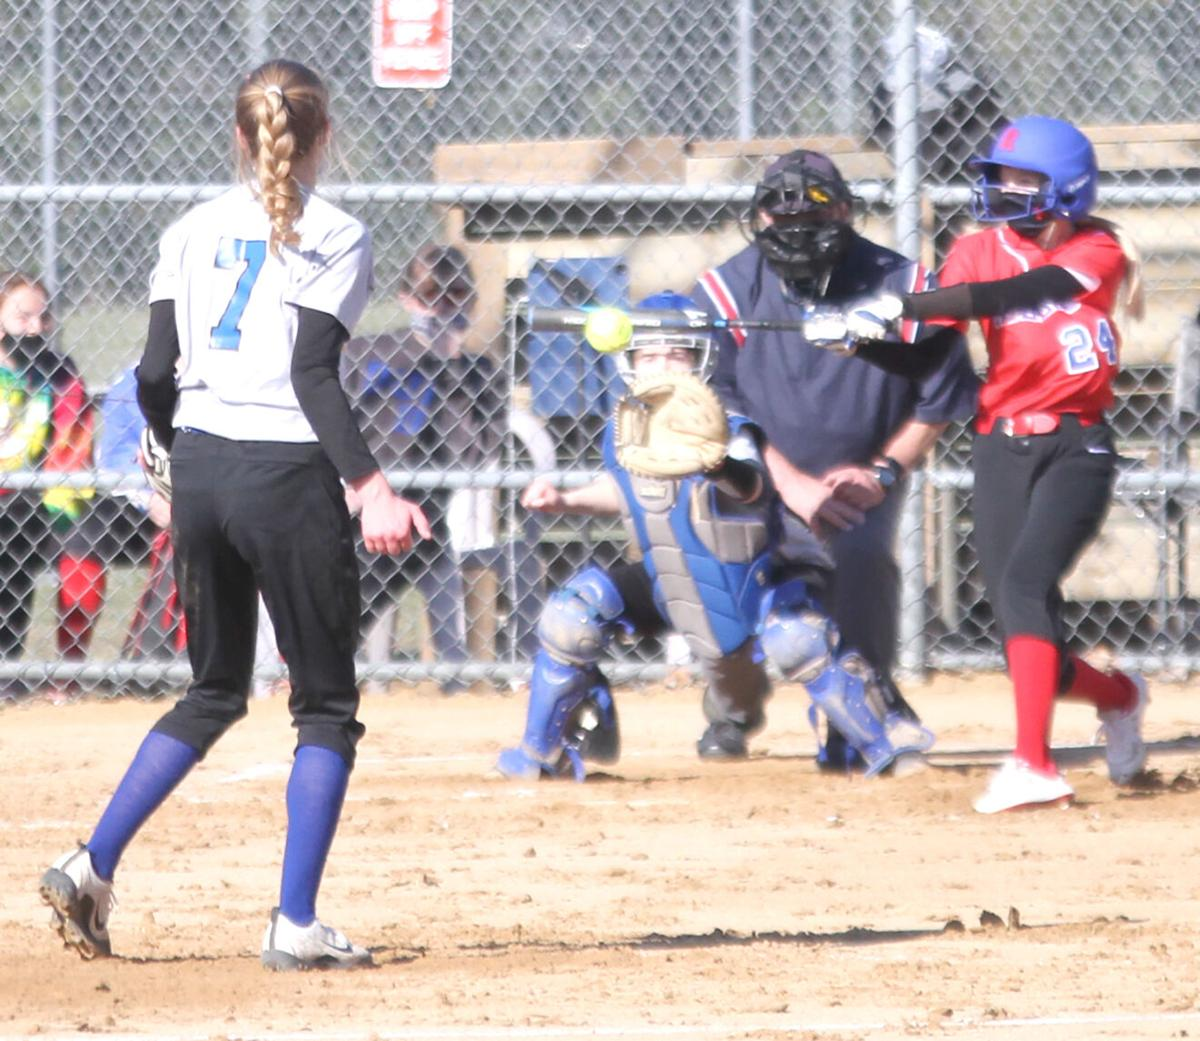 Moose Lake/Willow River Softball takes the field